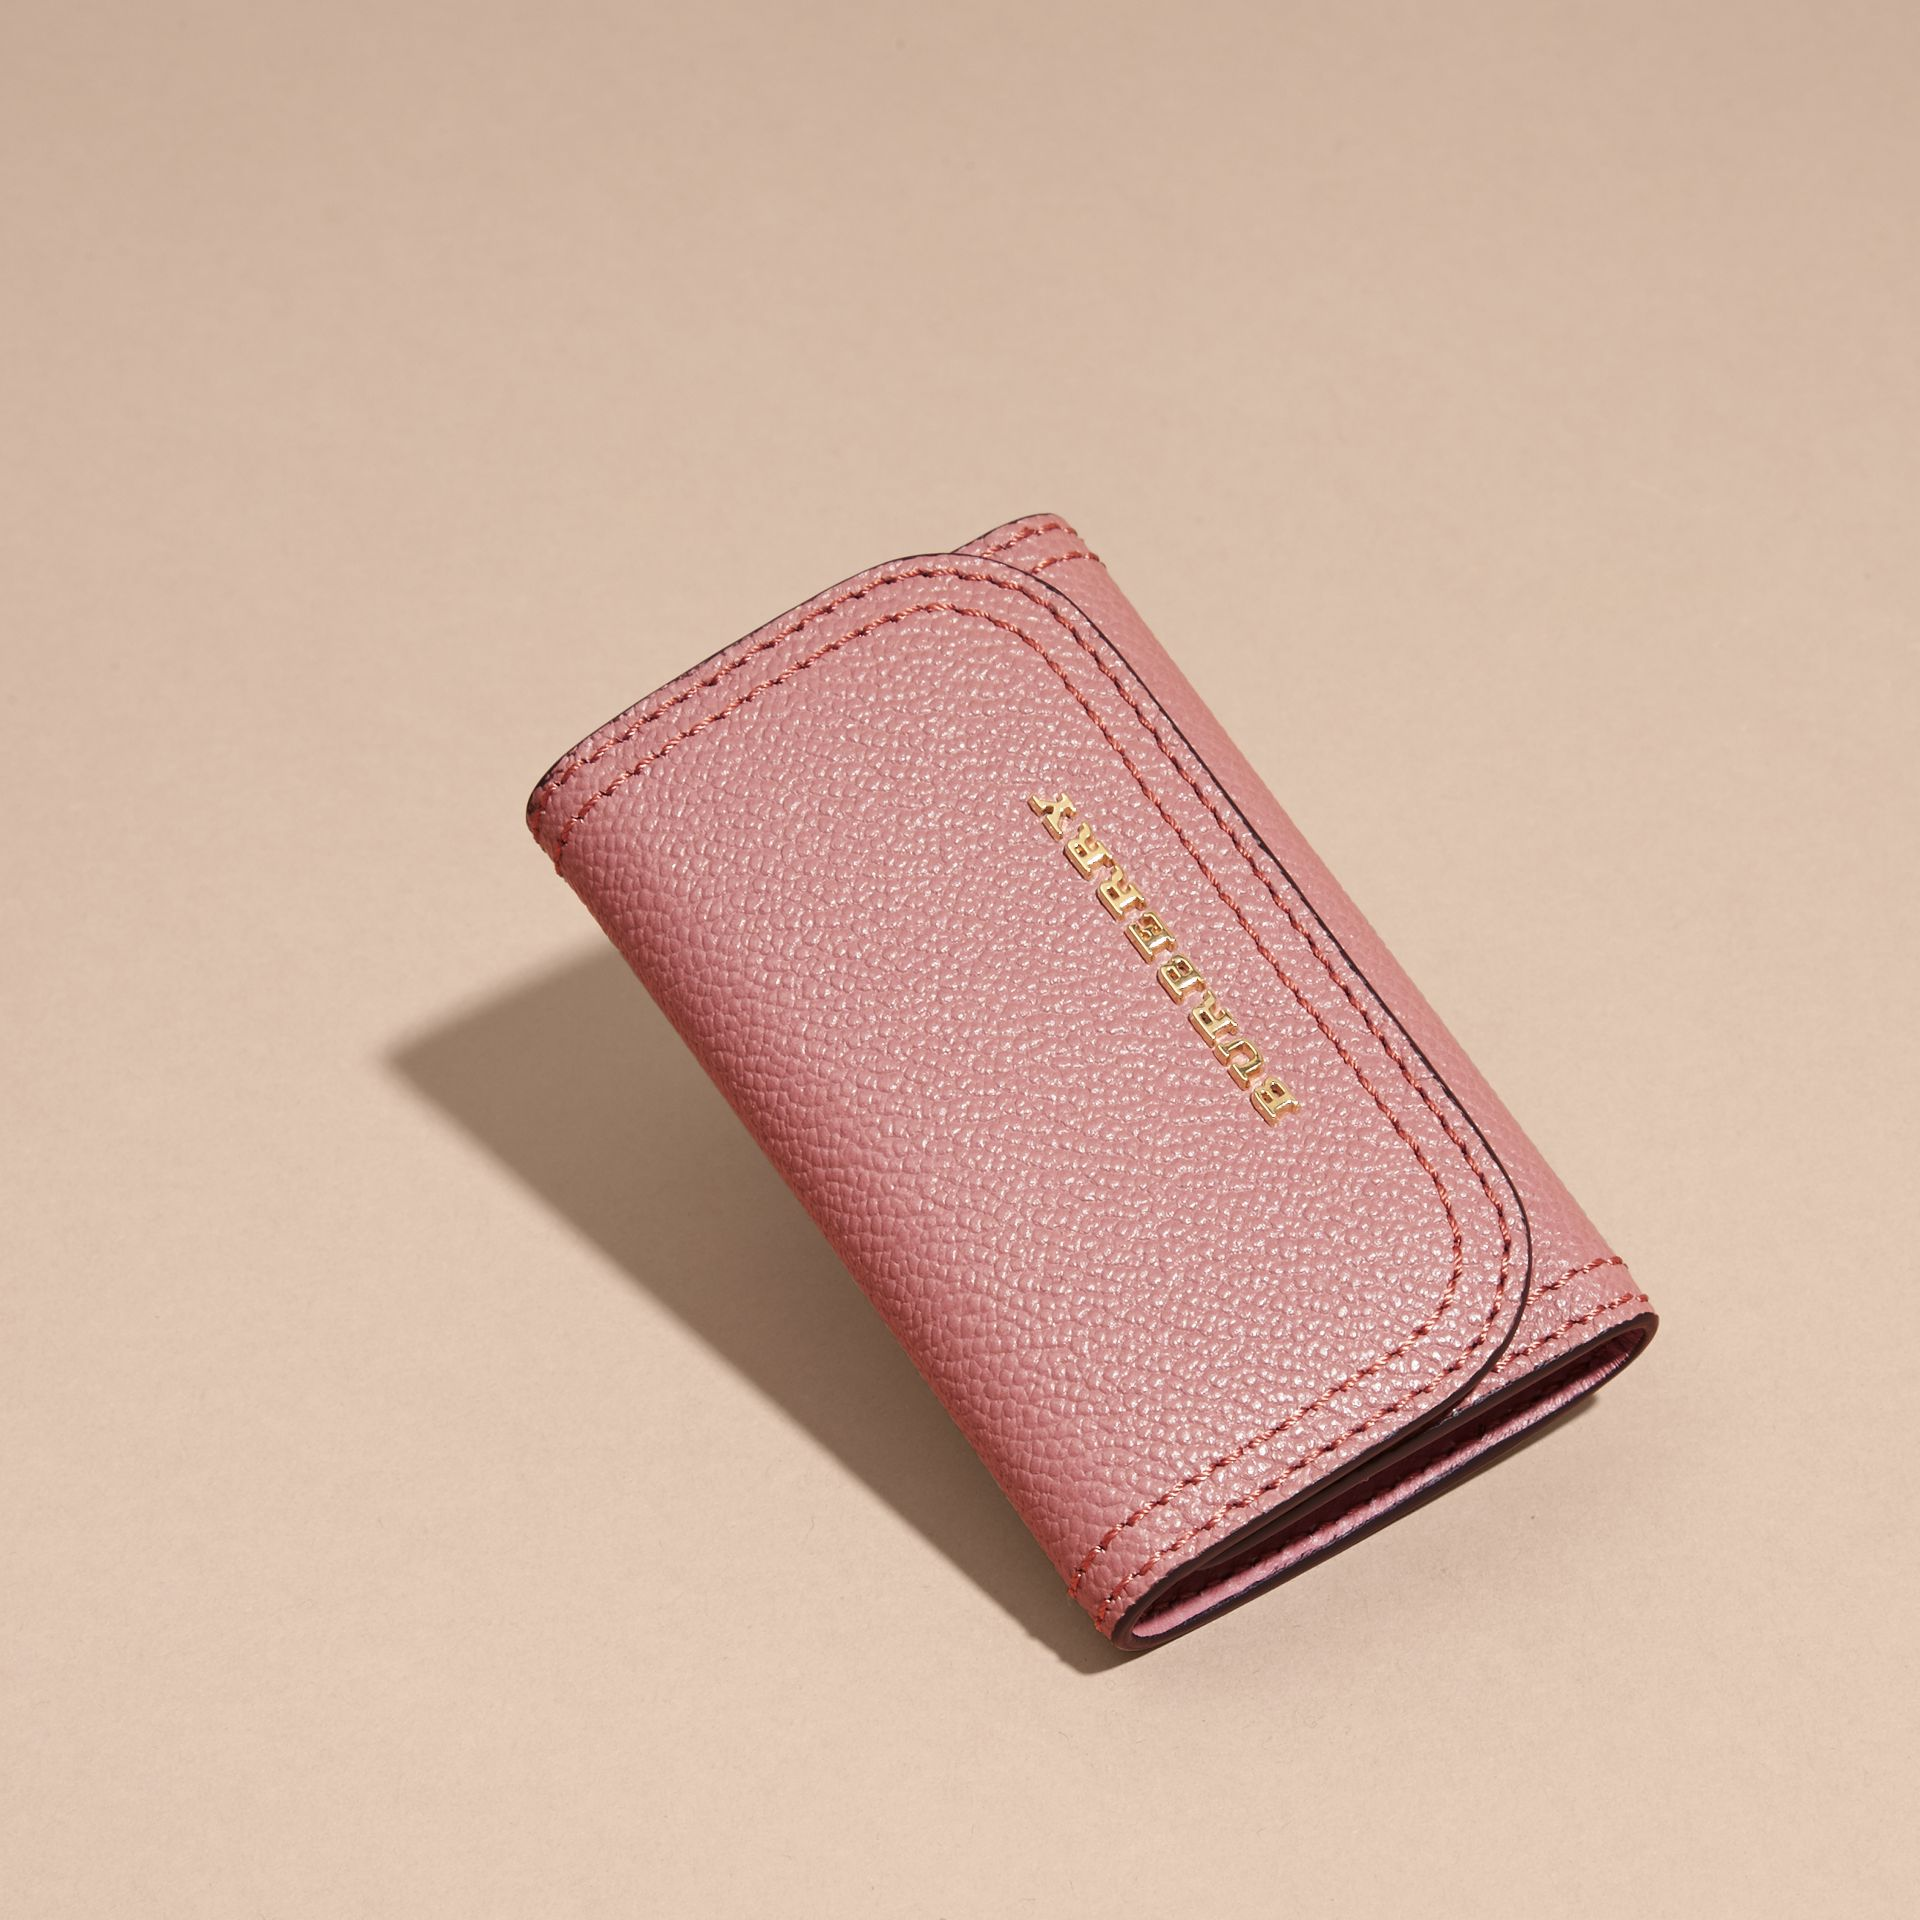 Grainy Leather Key Holder in Dusty Pink - Women | Burberry United States - gallery image 2